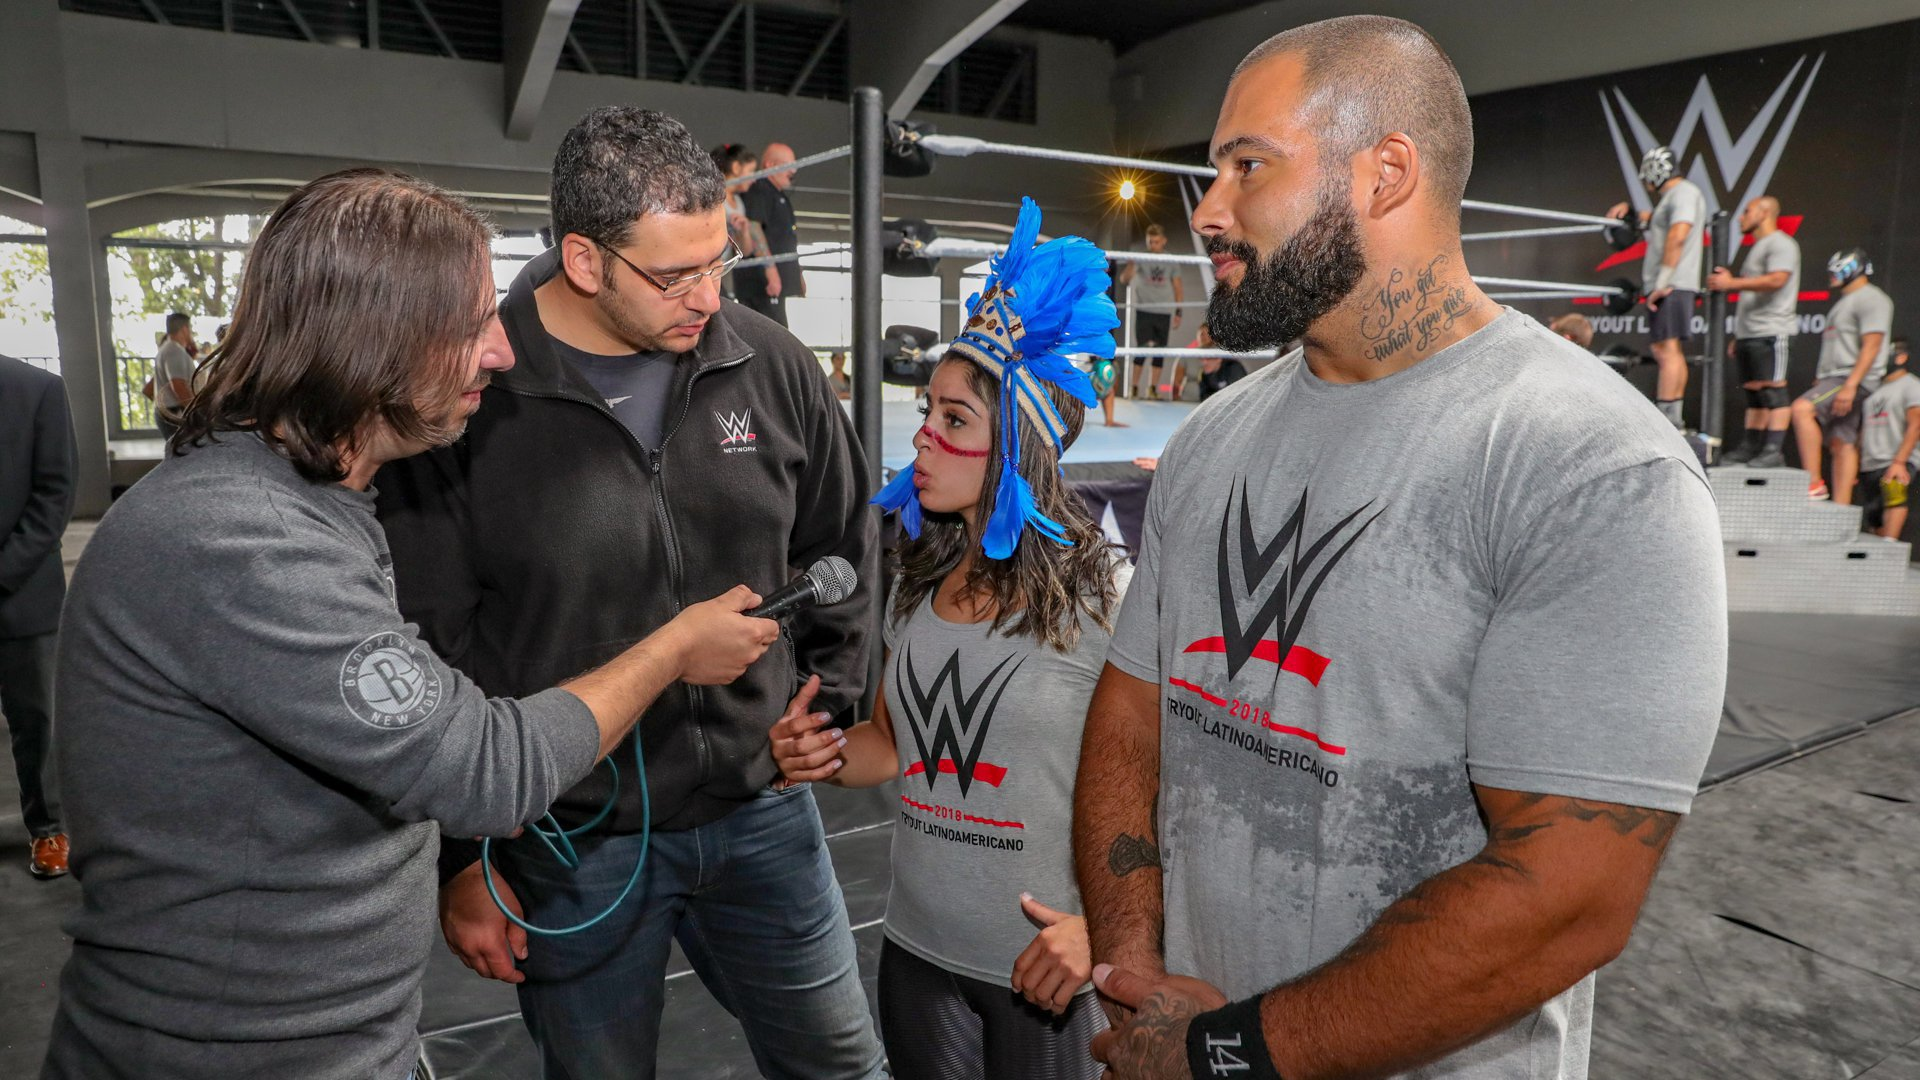 WWE's talent development arm has held several international tryouts this year, including in Jeddah, Saudi Arabia, and Cologne, Germany.